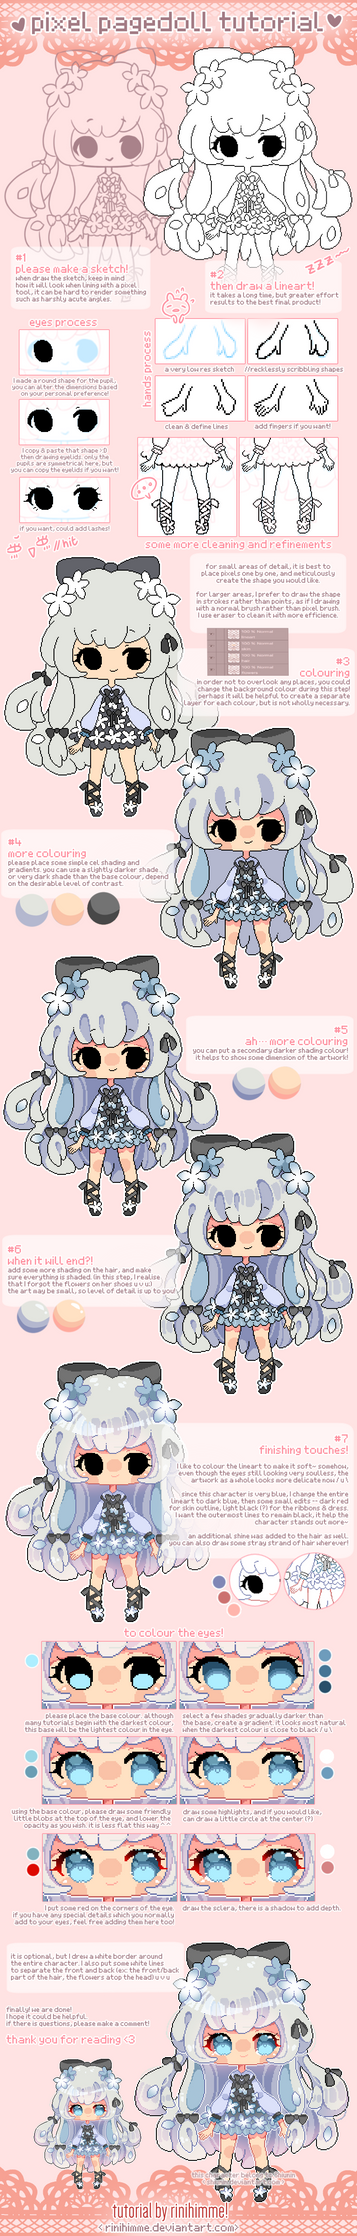 Rini's pixel pagedoll tutorial! by rinihimme